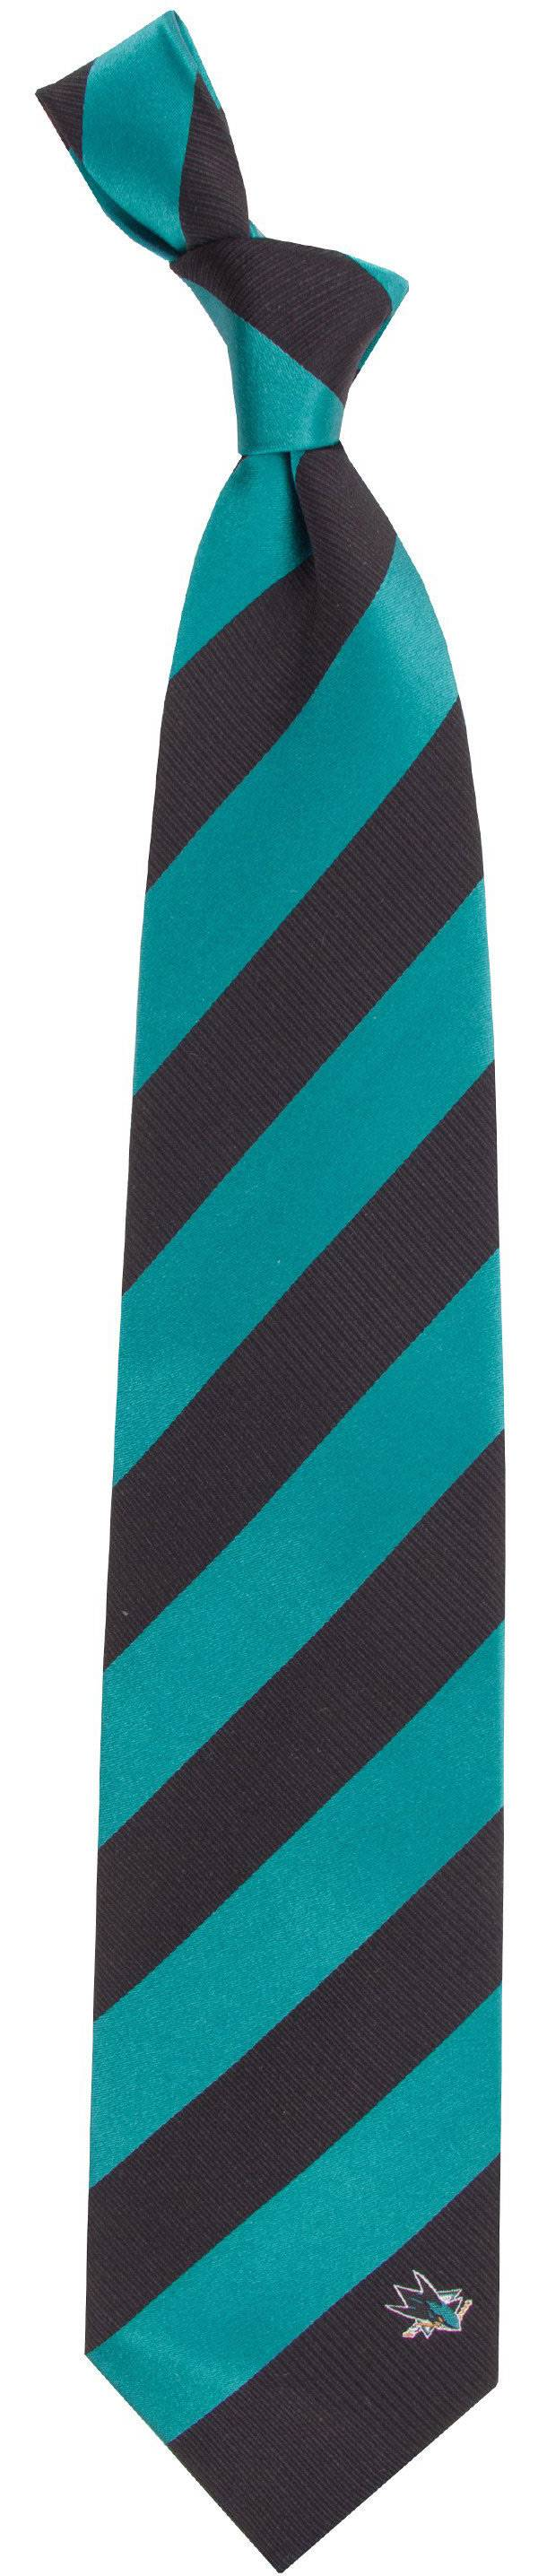 Eagles Wings San Jose Sharks Woven Silk Necktie product image